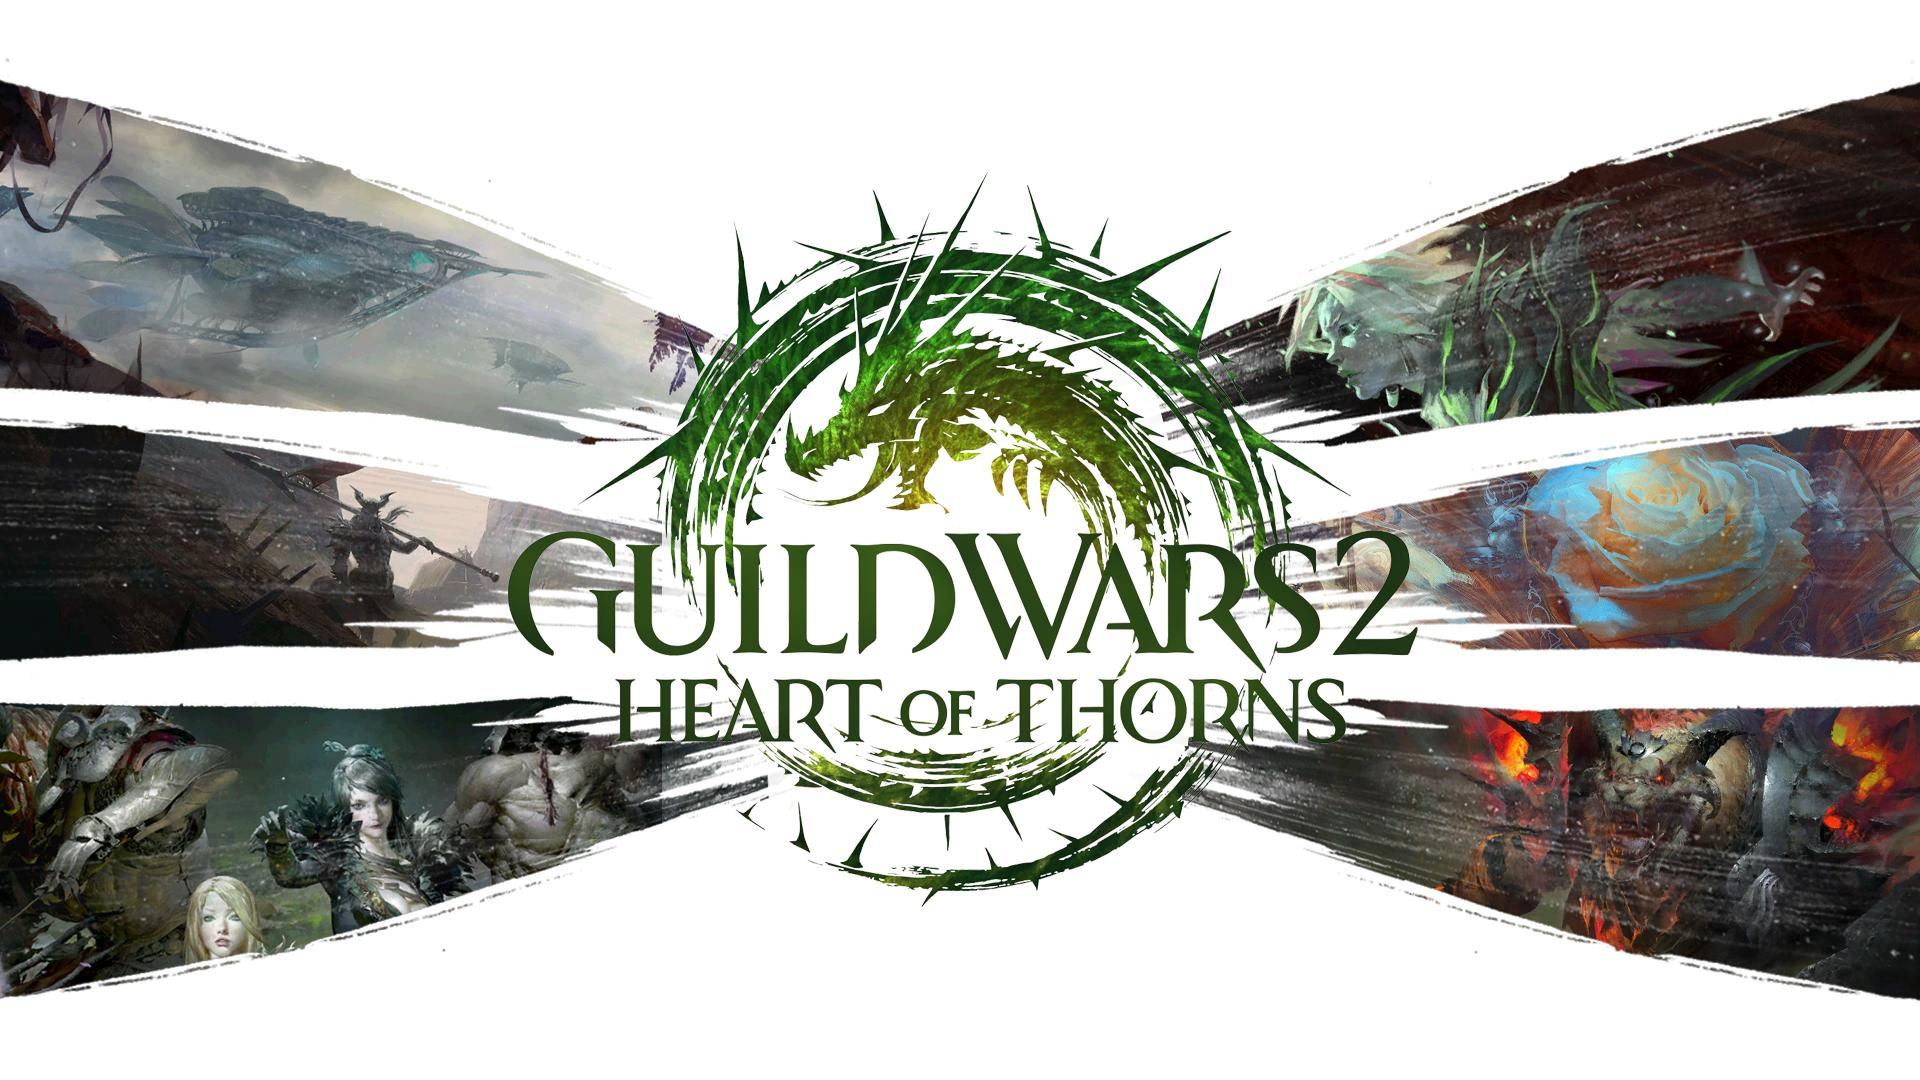 Guild Wars 2: Heart of Thorns launch! [outdated] - Games